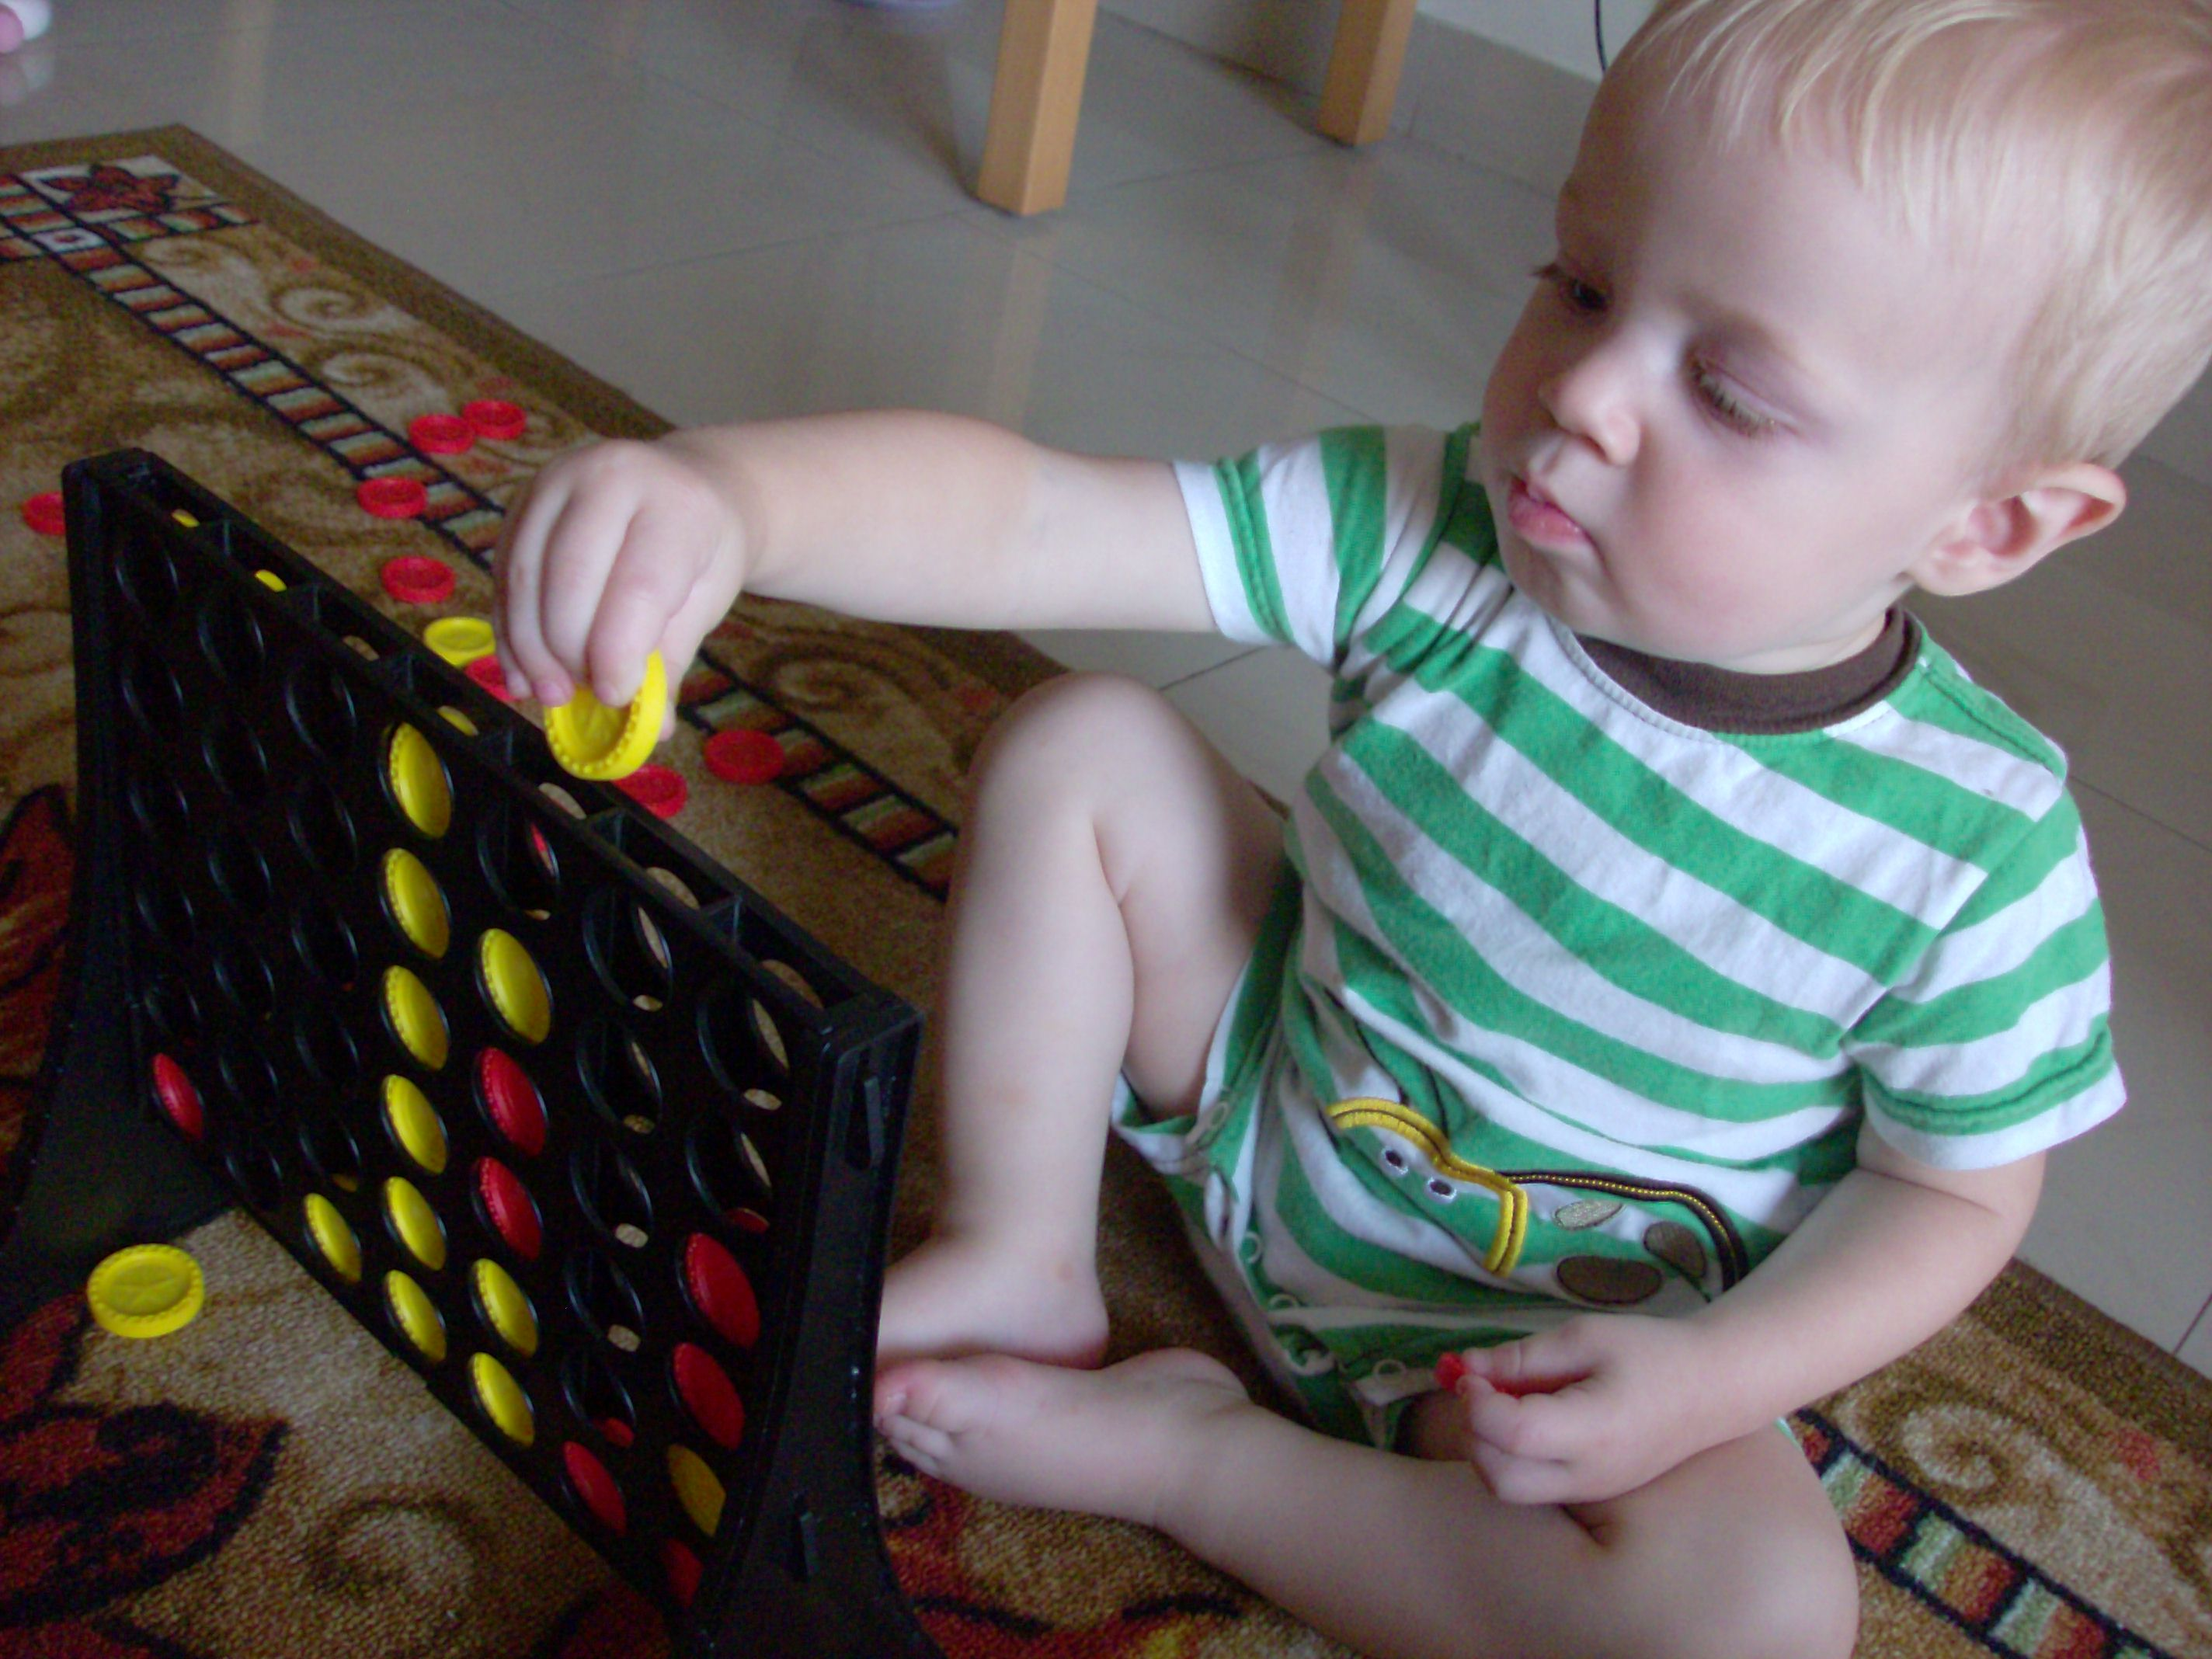 Baby playing connect 4